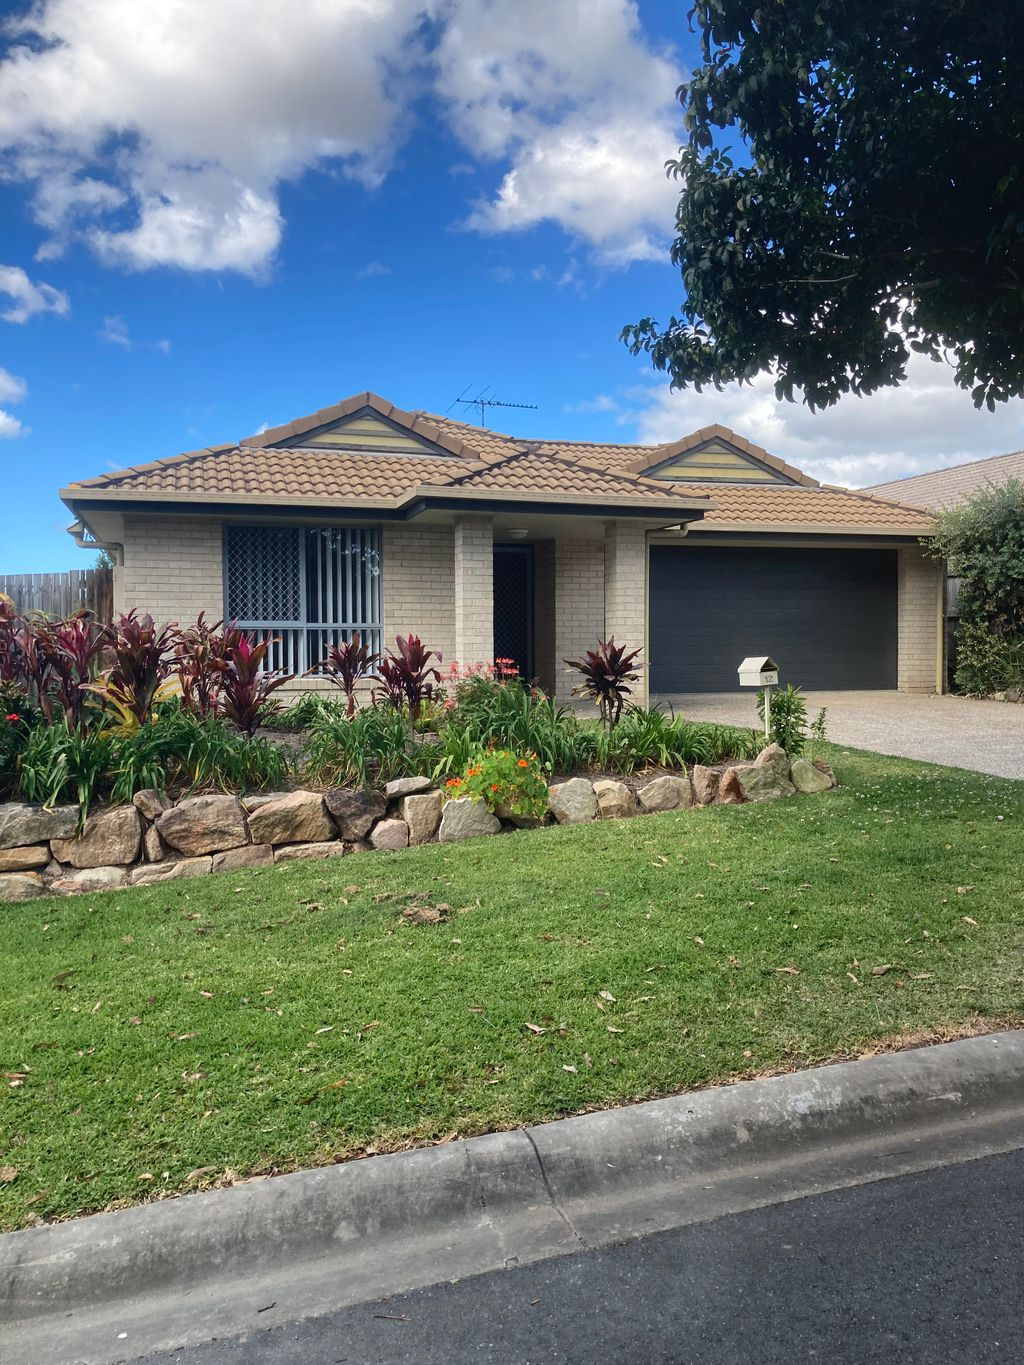 ** This property has an approved application on this now **  Lovely 4 bedroom home in cul-de-sac